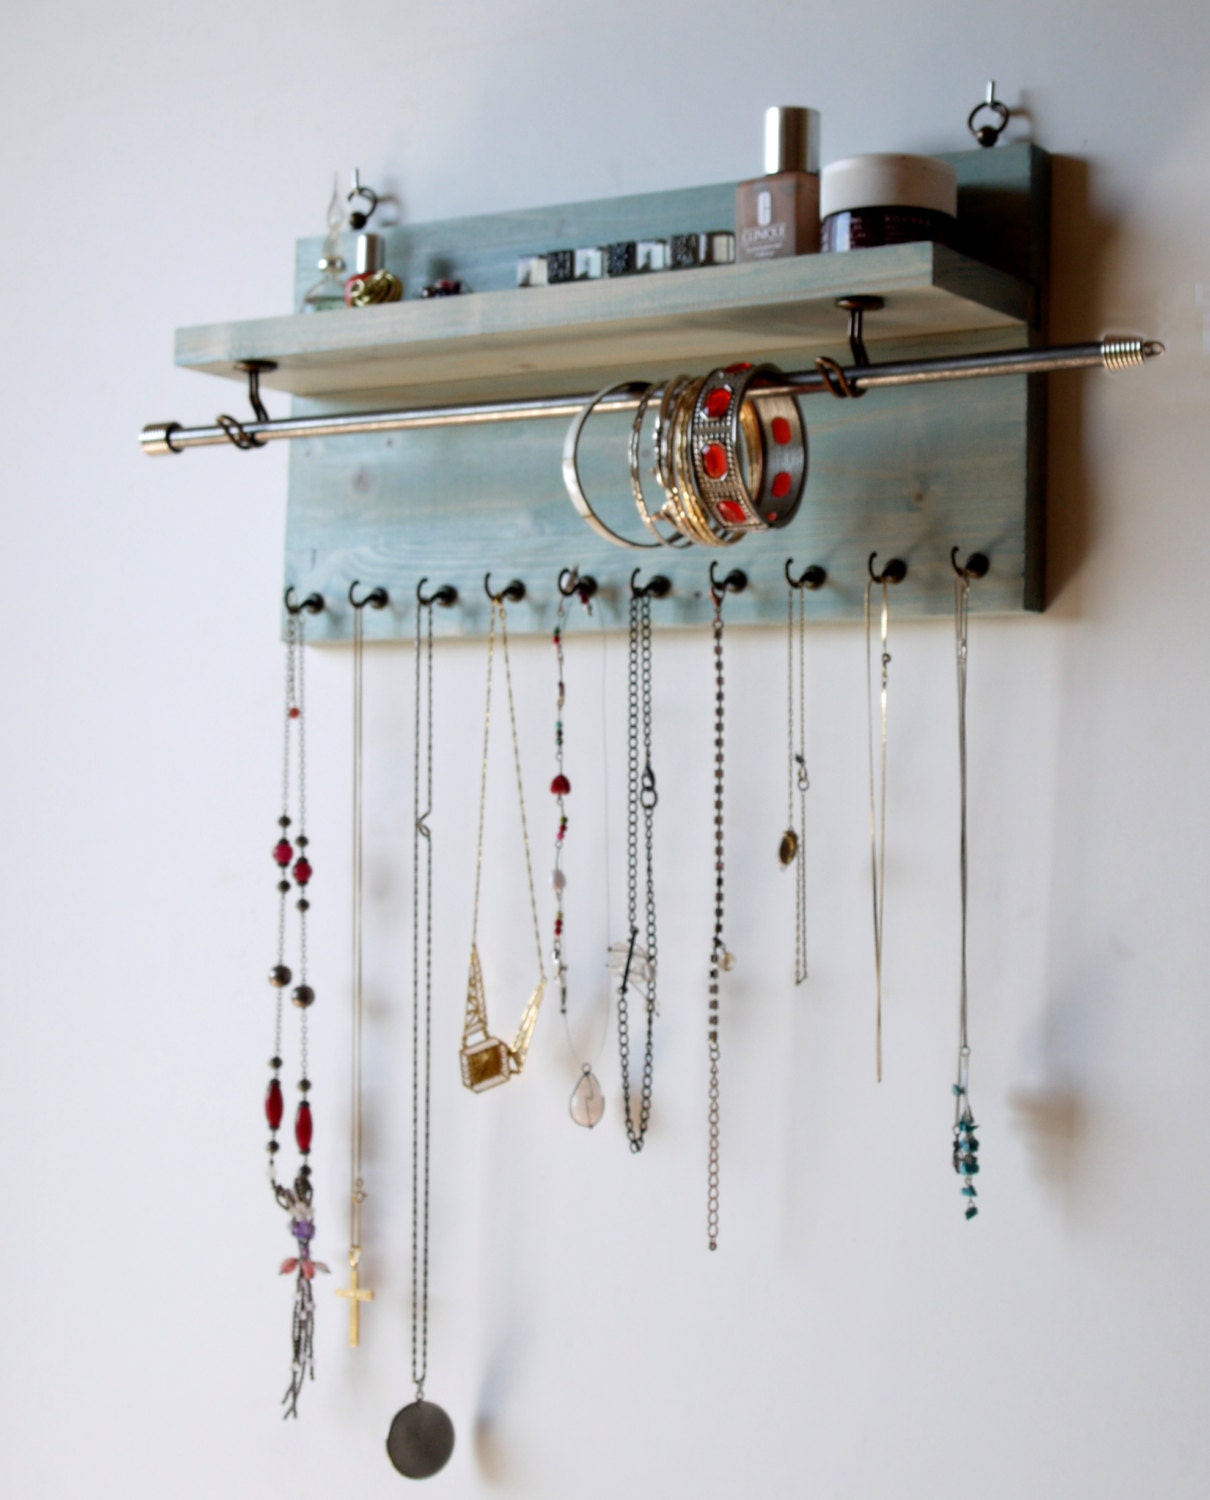 Jewelry organizer necklace display aqua blue wall mounted - Fabriquer un porte bijoux mural ...